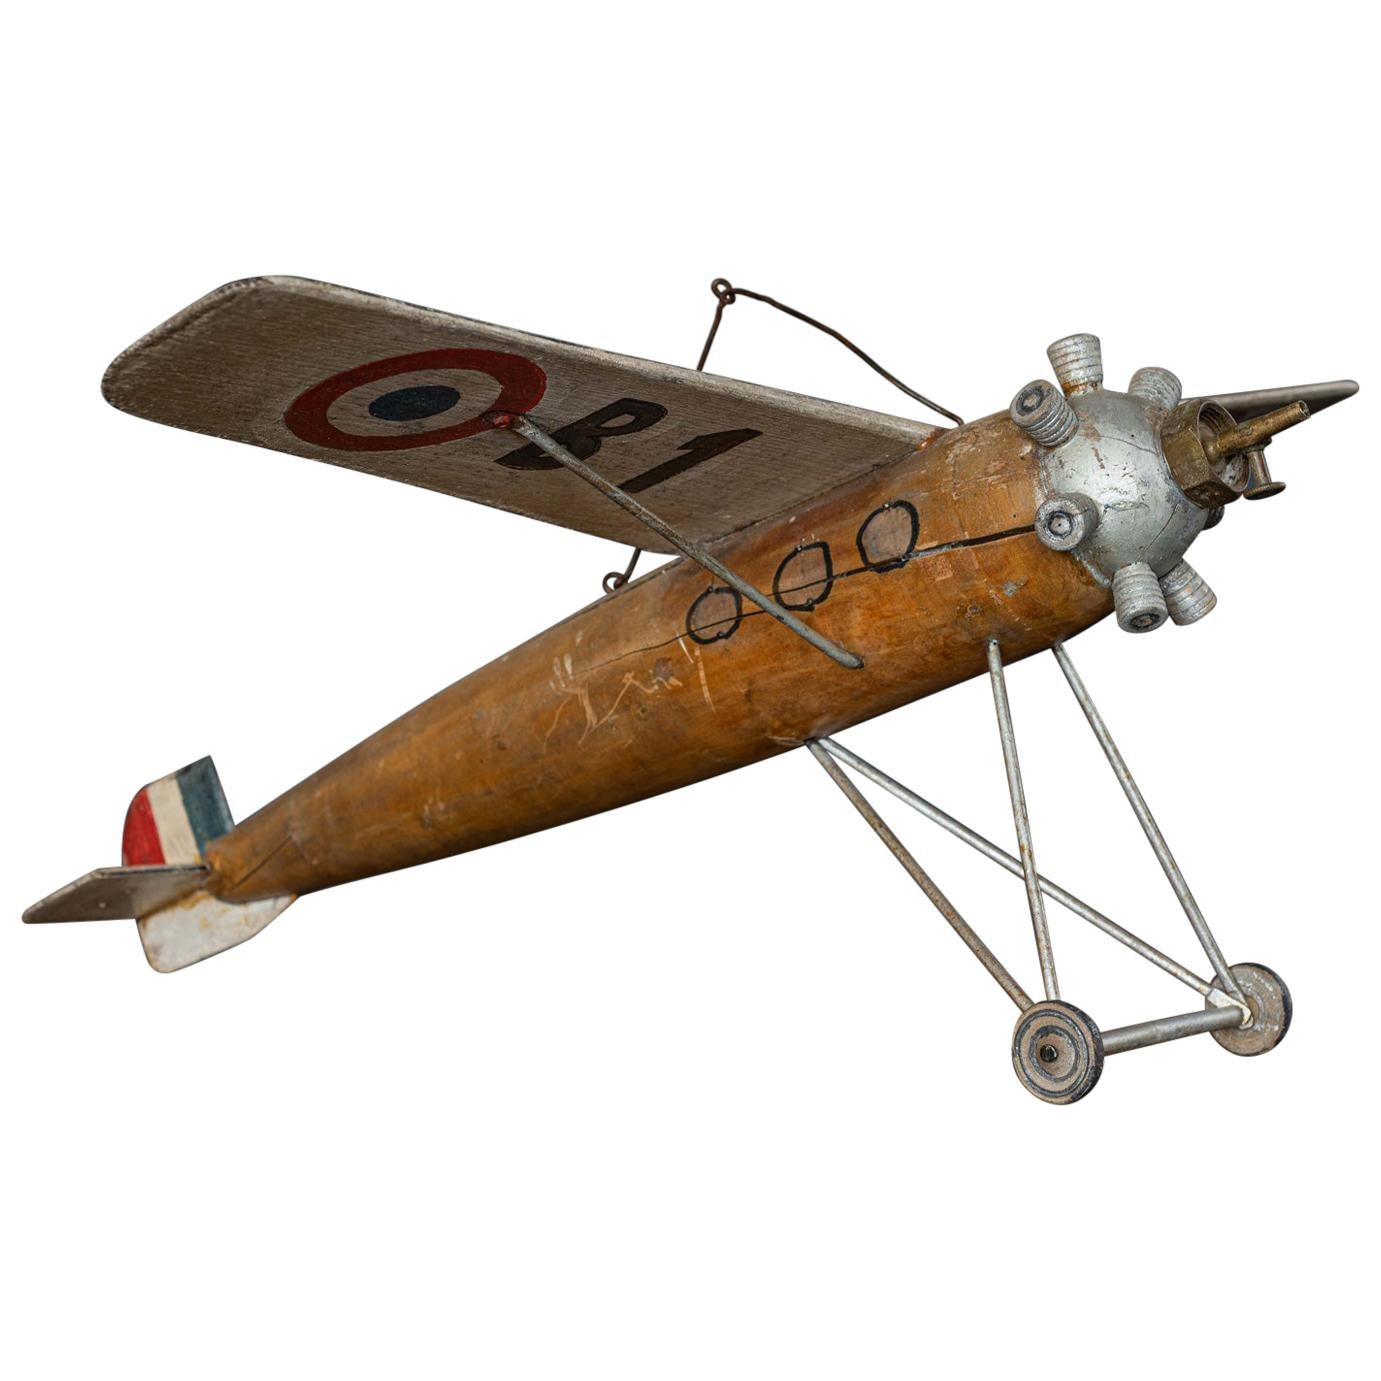 Scratch Built French Airplane, Early Mid-20th Century